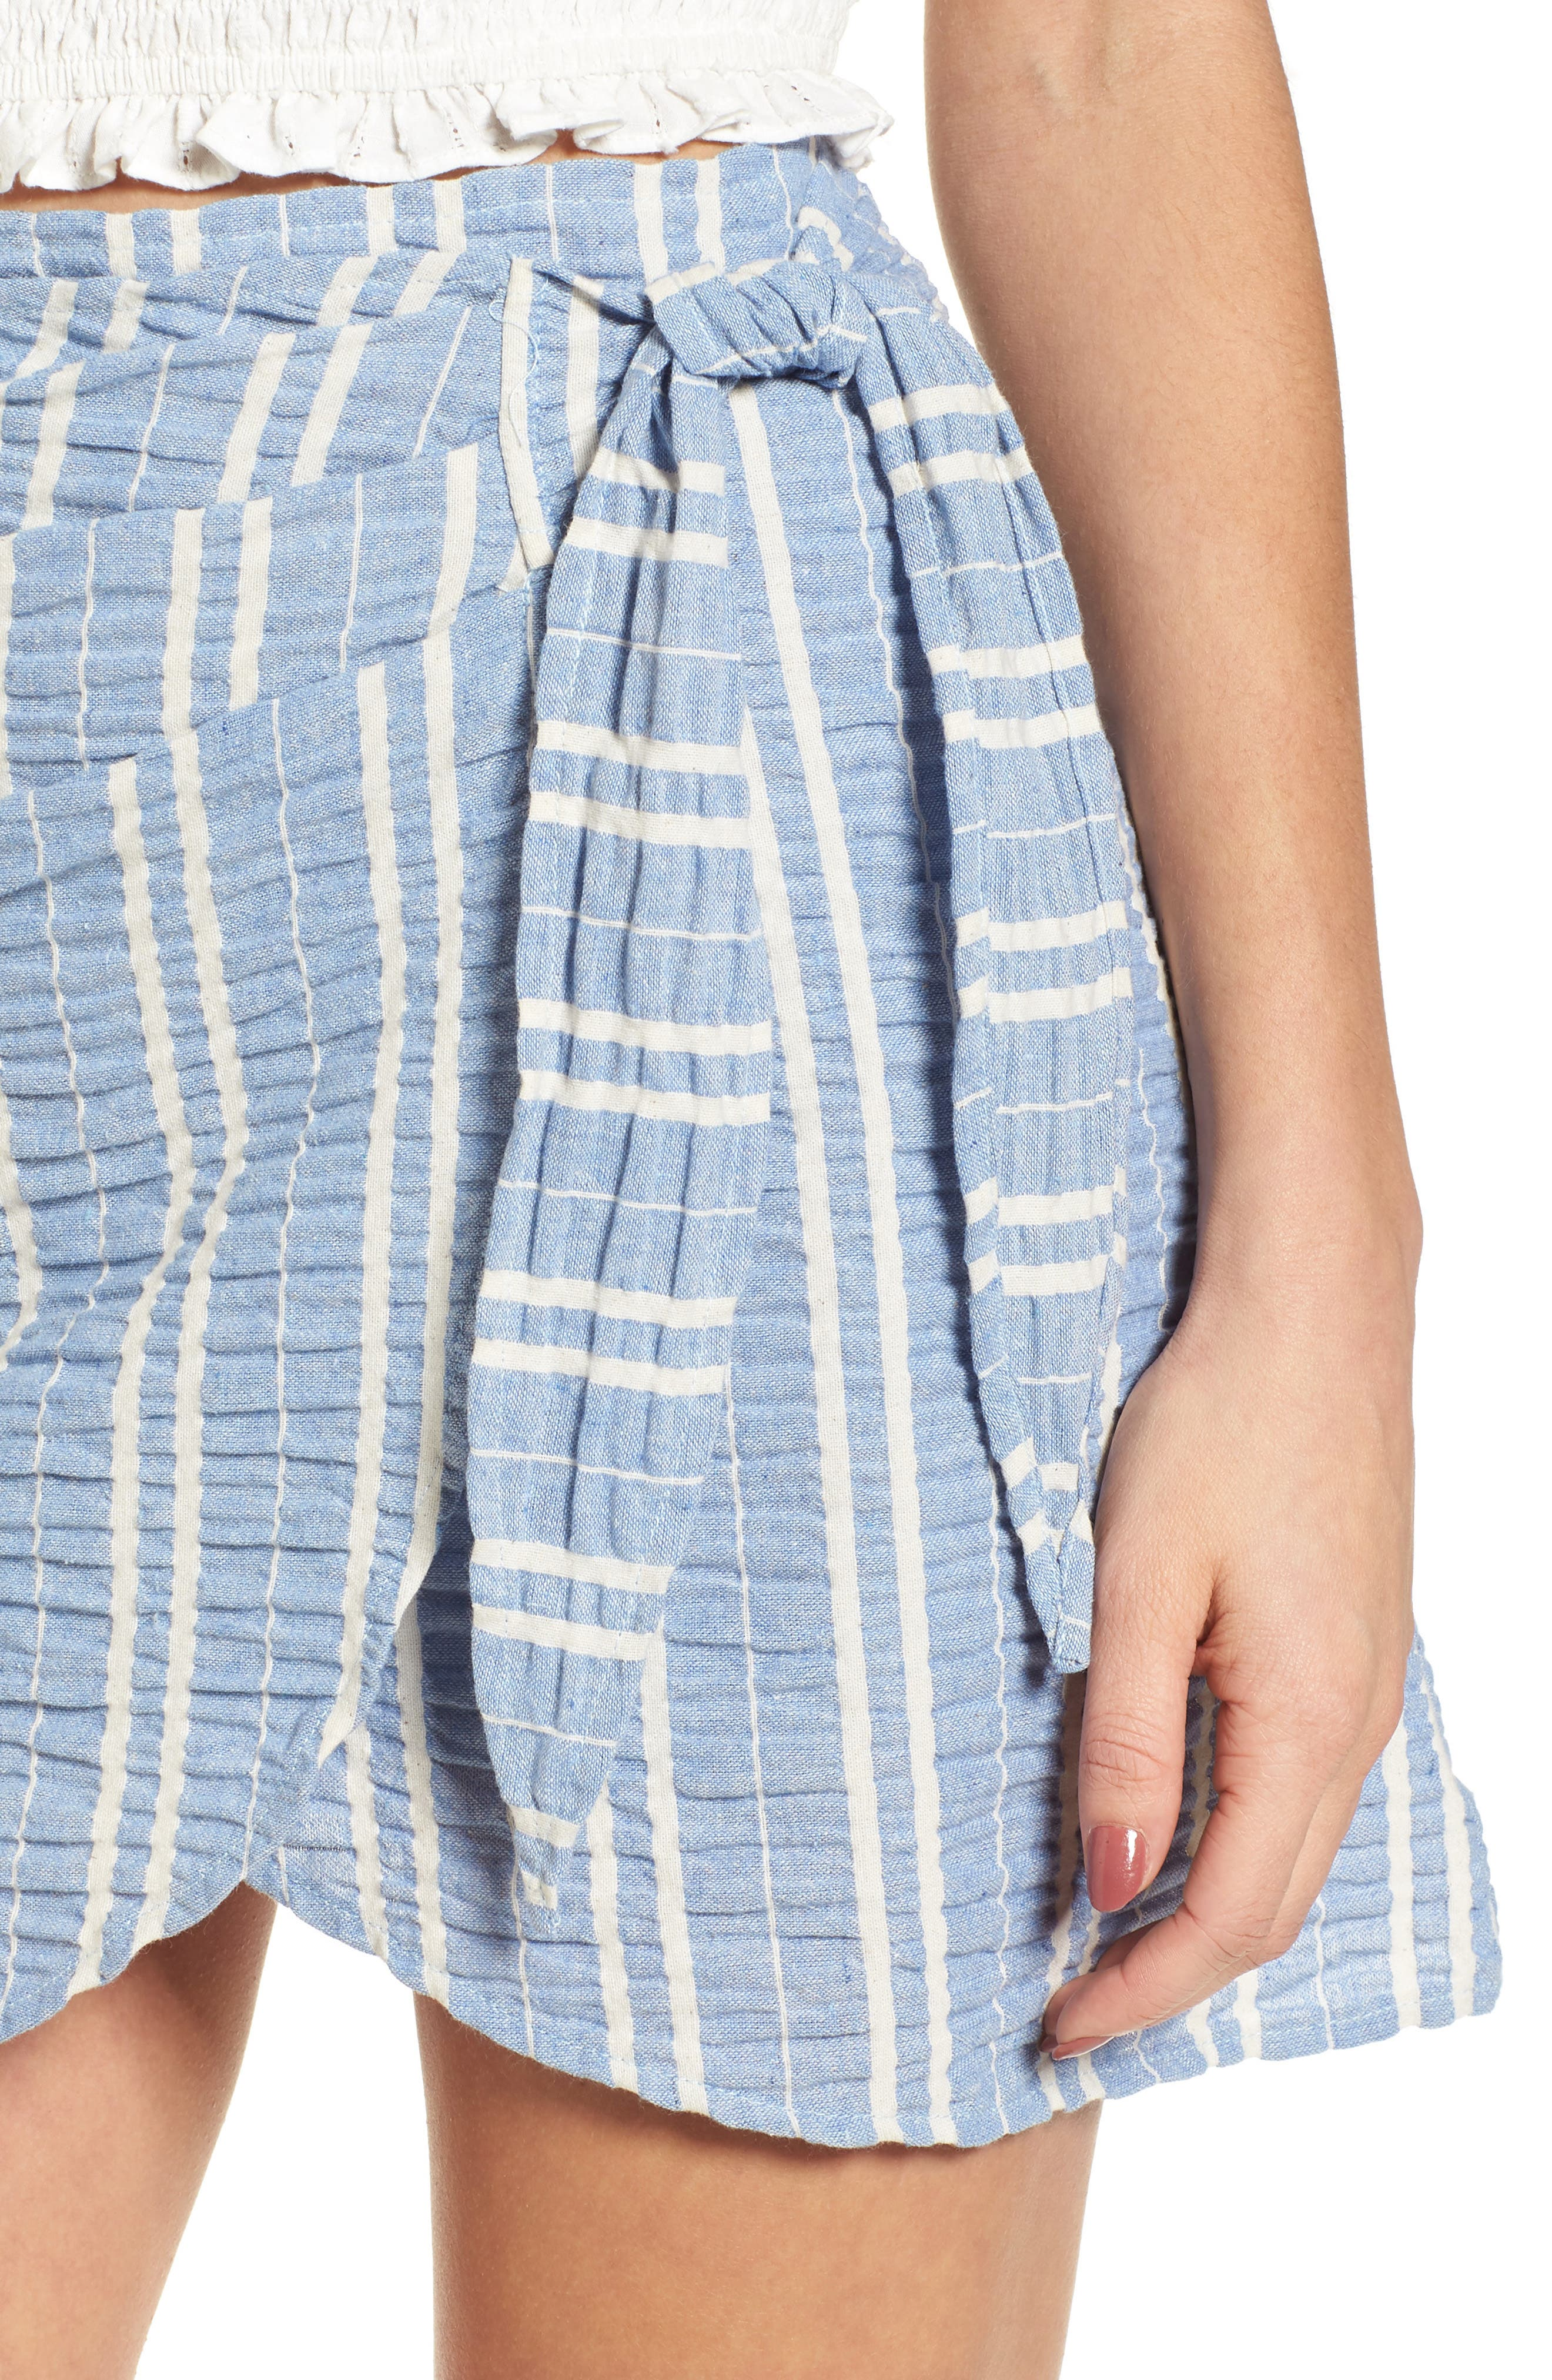 LOST + WANDER,                             Waves Wrap Front Skirt,                             Alternate thumbnail 4, color,                             466